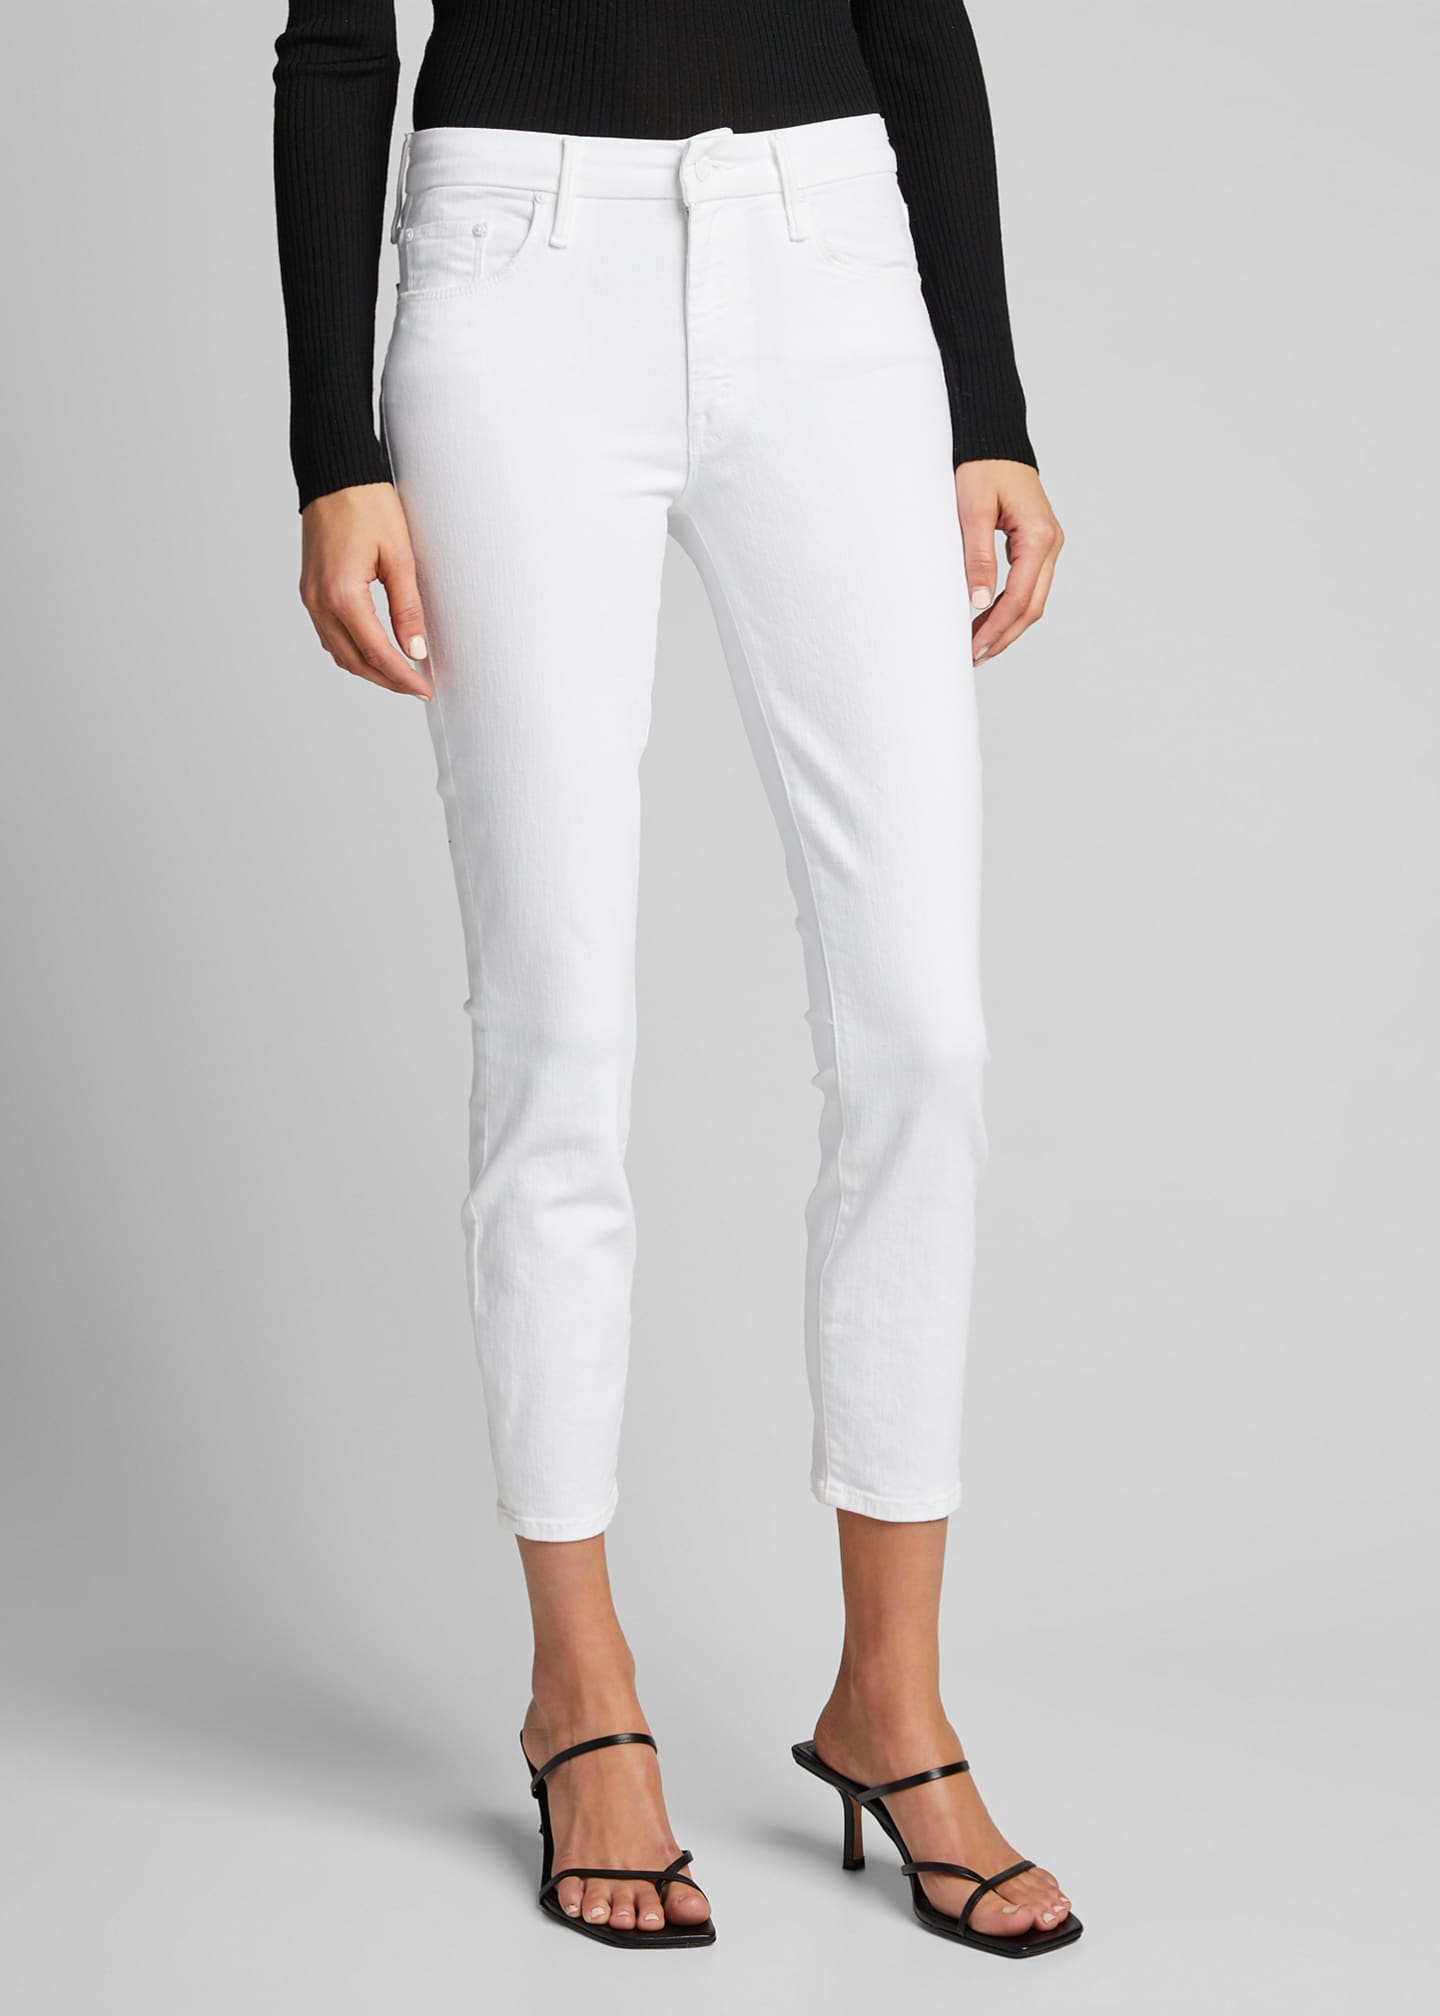 Image 3 of 5: The Looker Crop Jeans